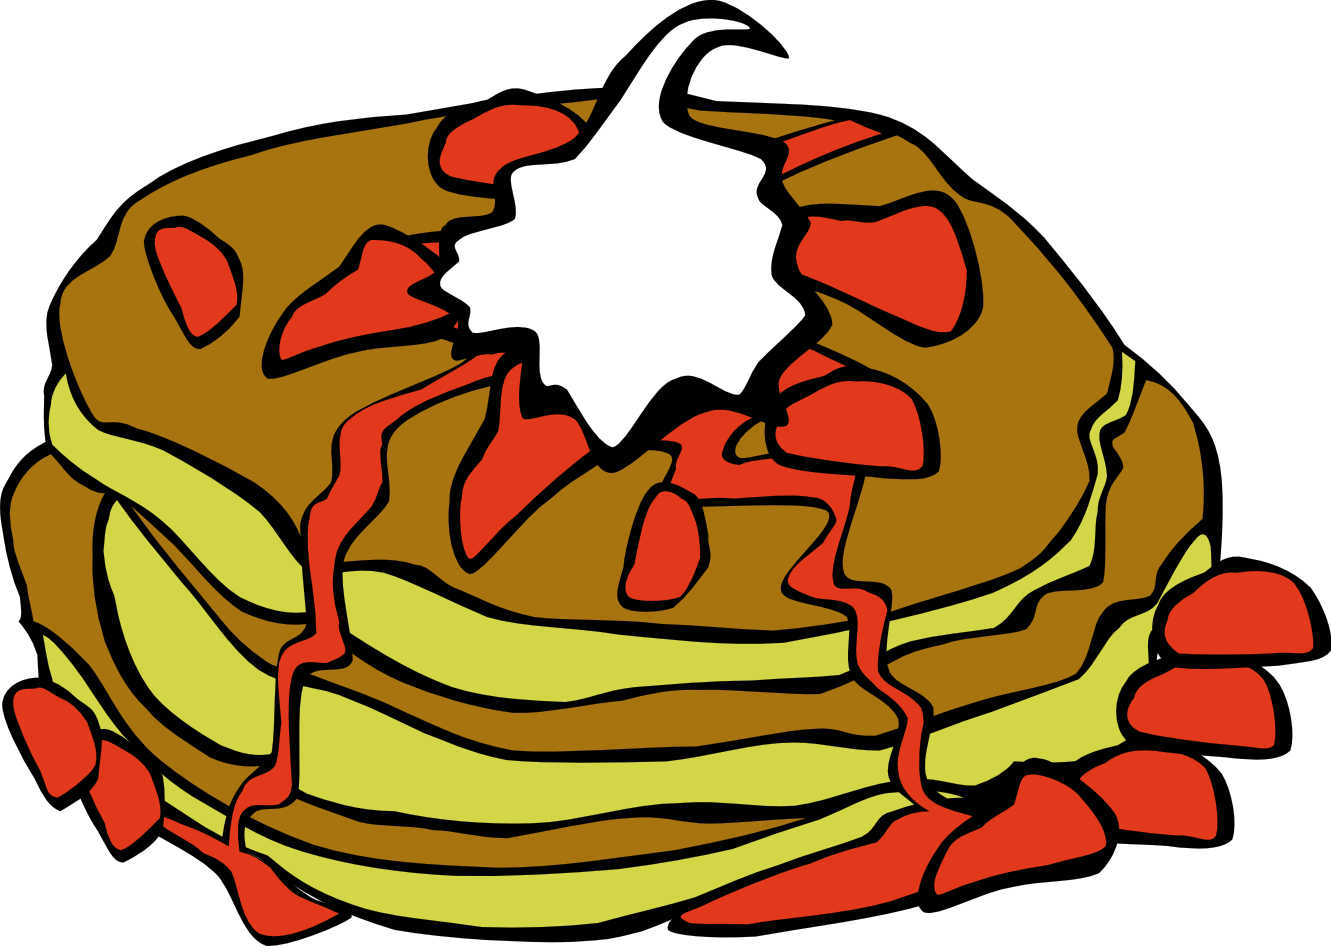 1331x946 Download Breakfast Clip Art Free Clipart Of Breakfast Food 3 Image